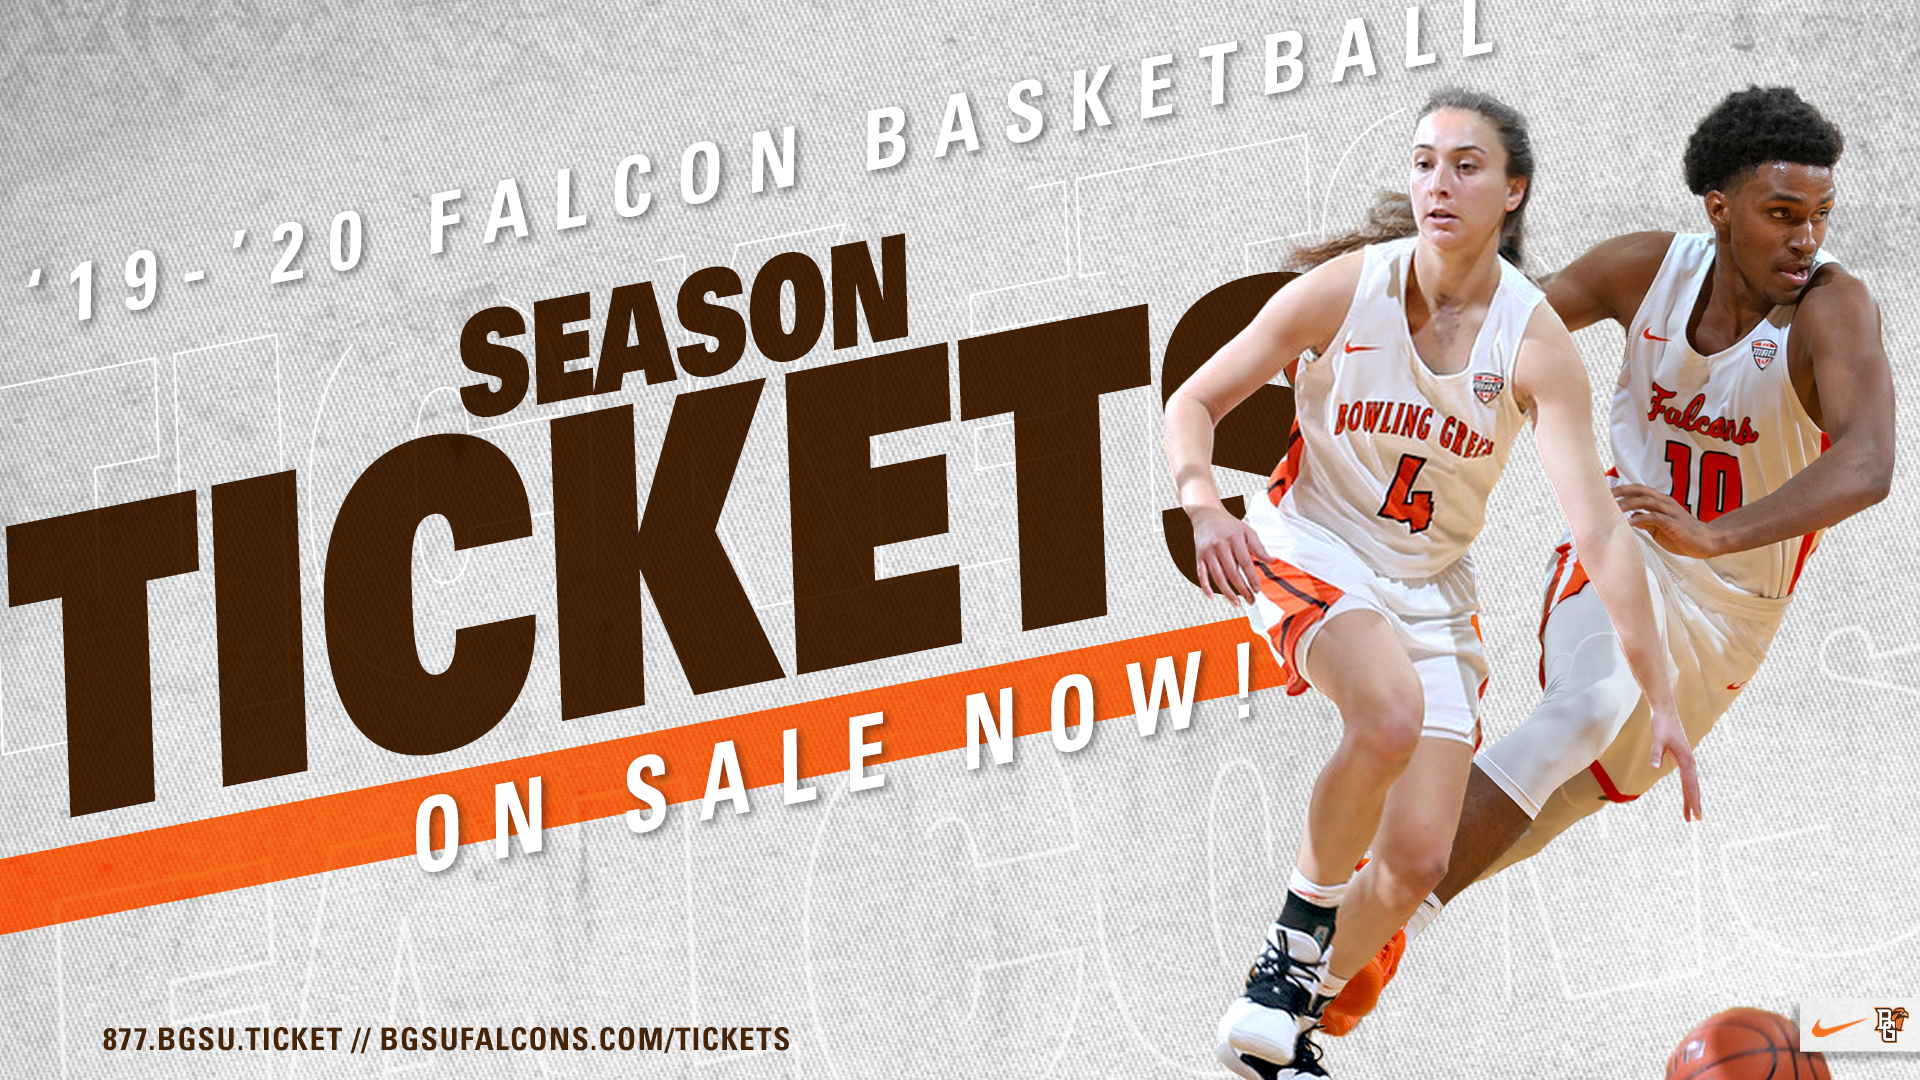 Men S And Women S Basketball Season Tickets On Sale Now